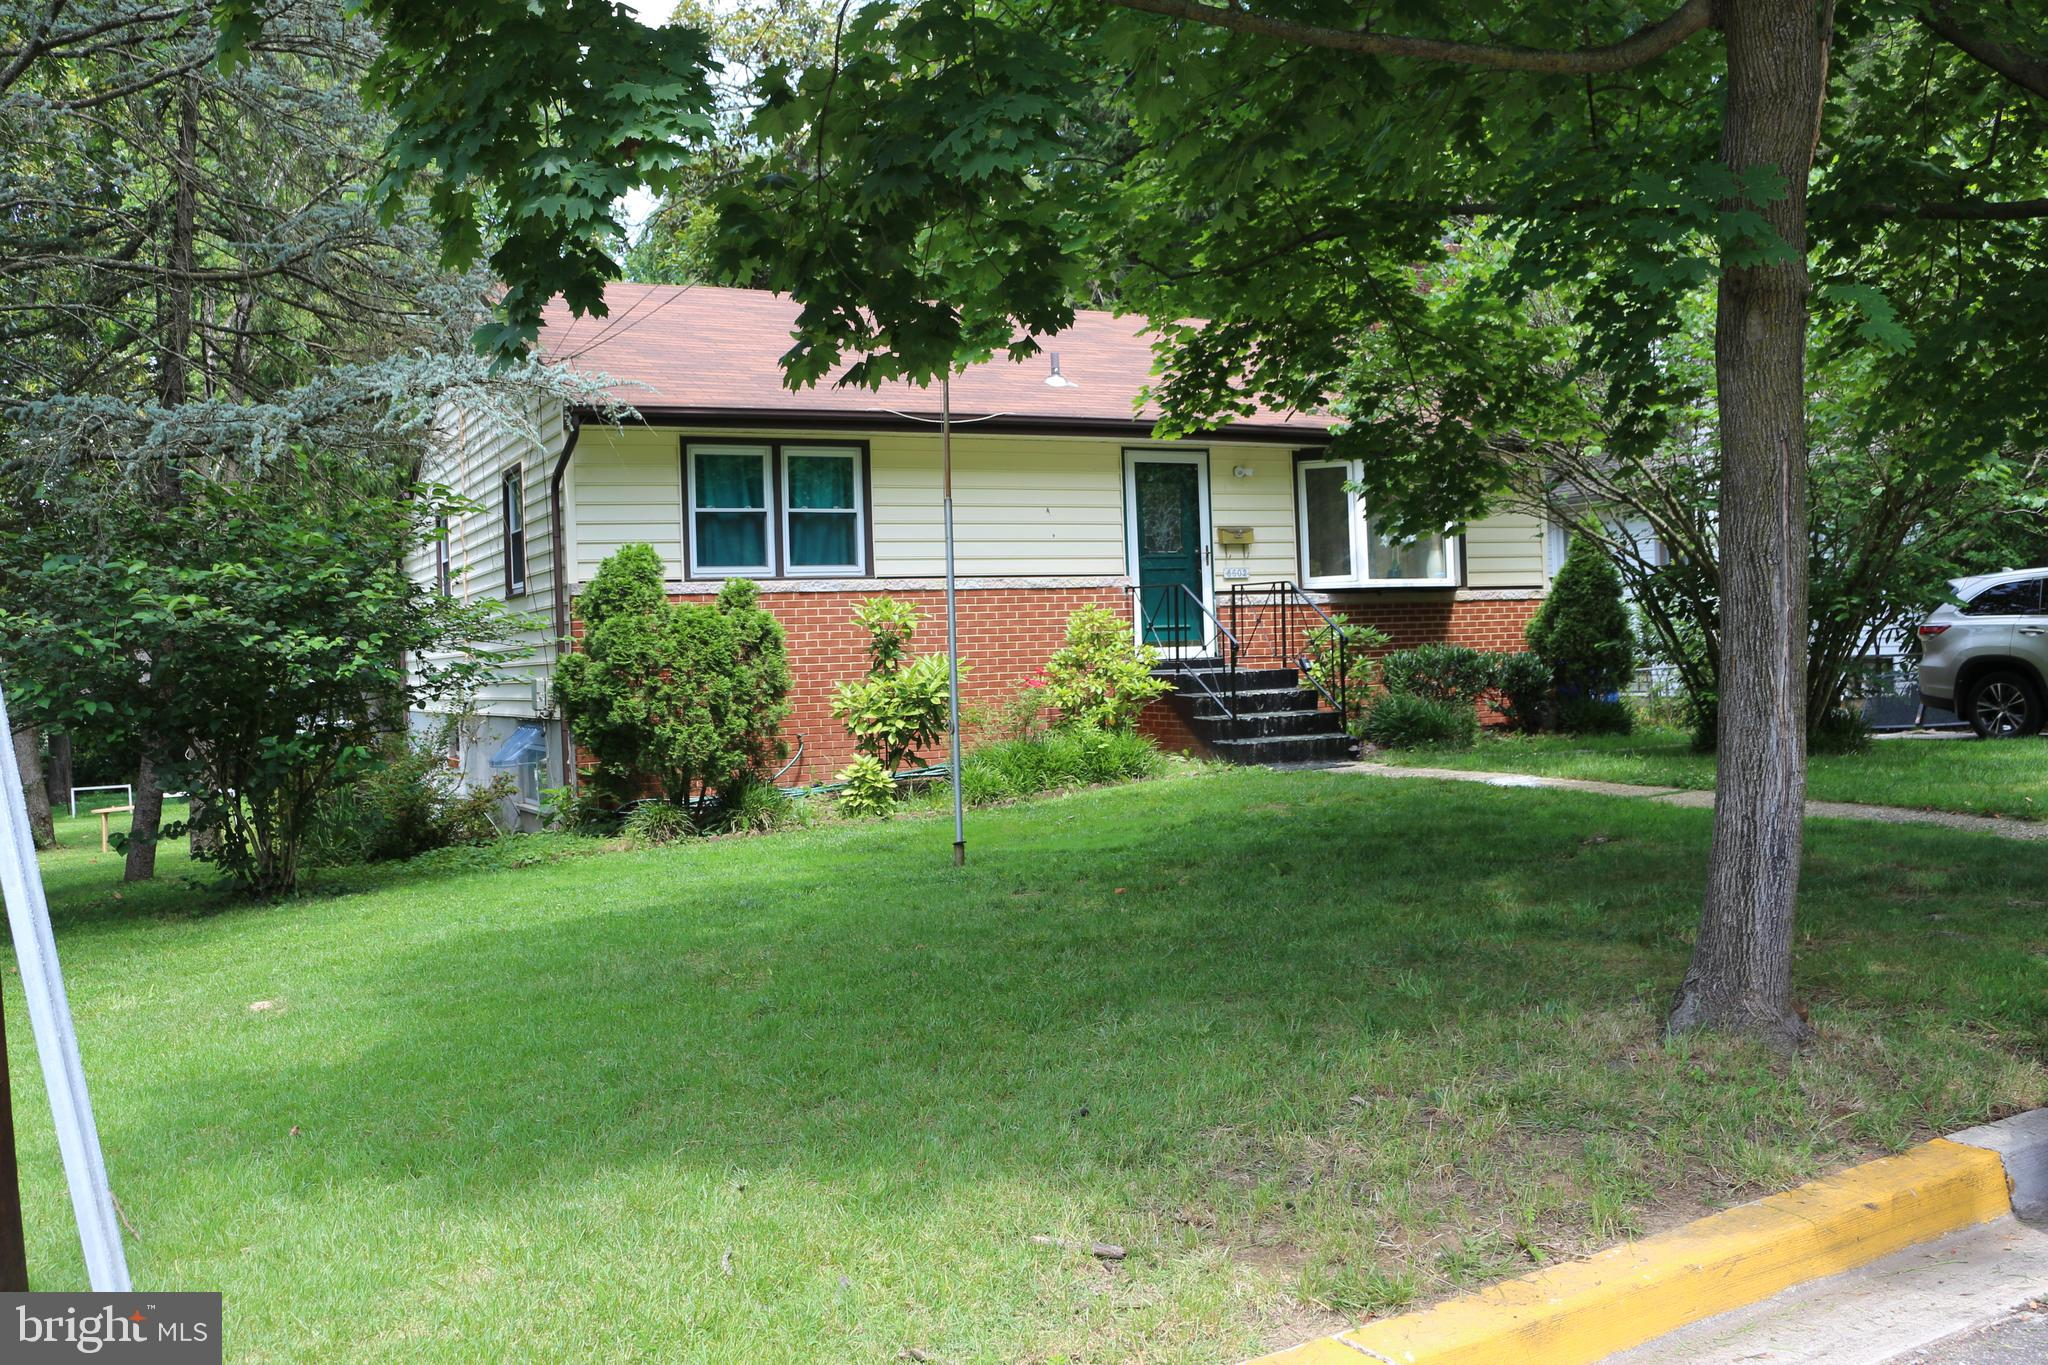 Single-family home finished basement with space for rooms and kitchenette.  Located in a quiet neigh